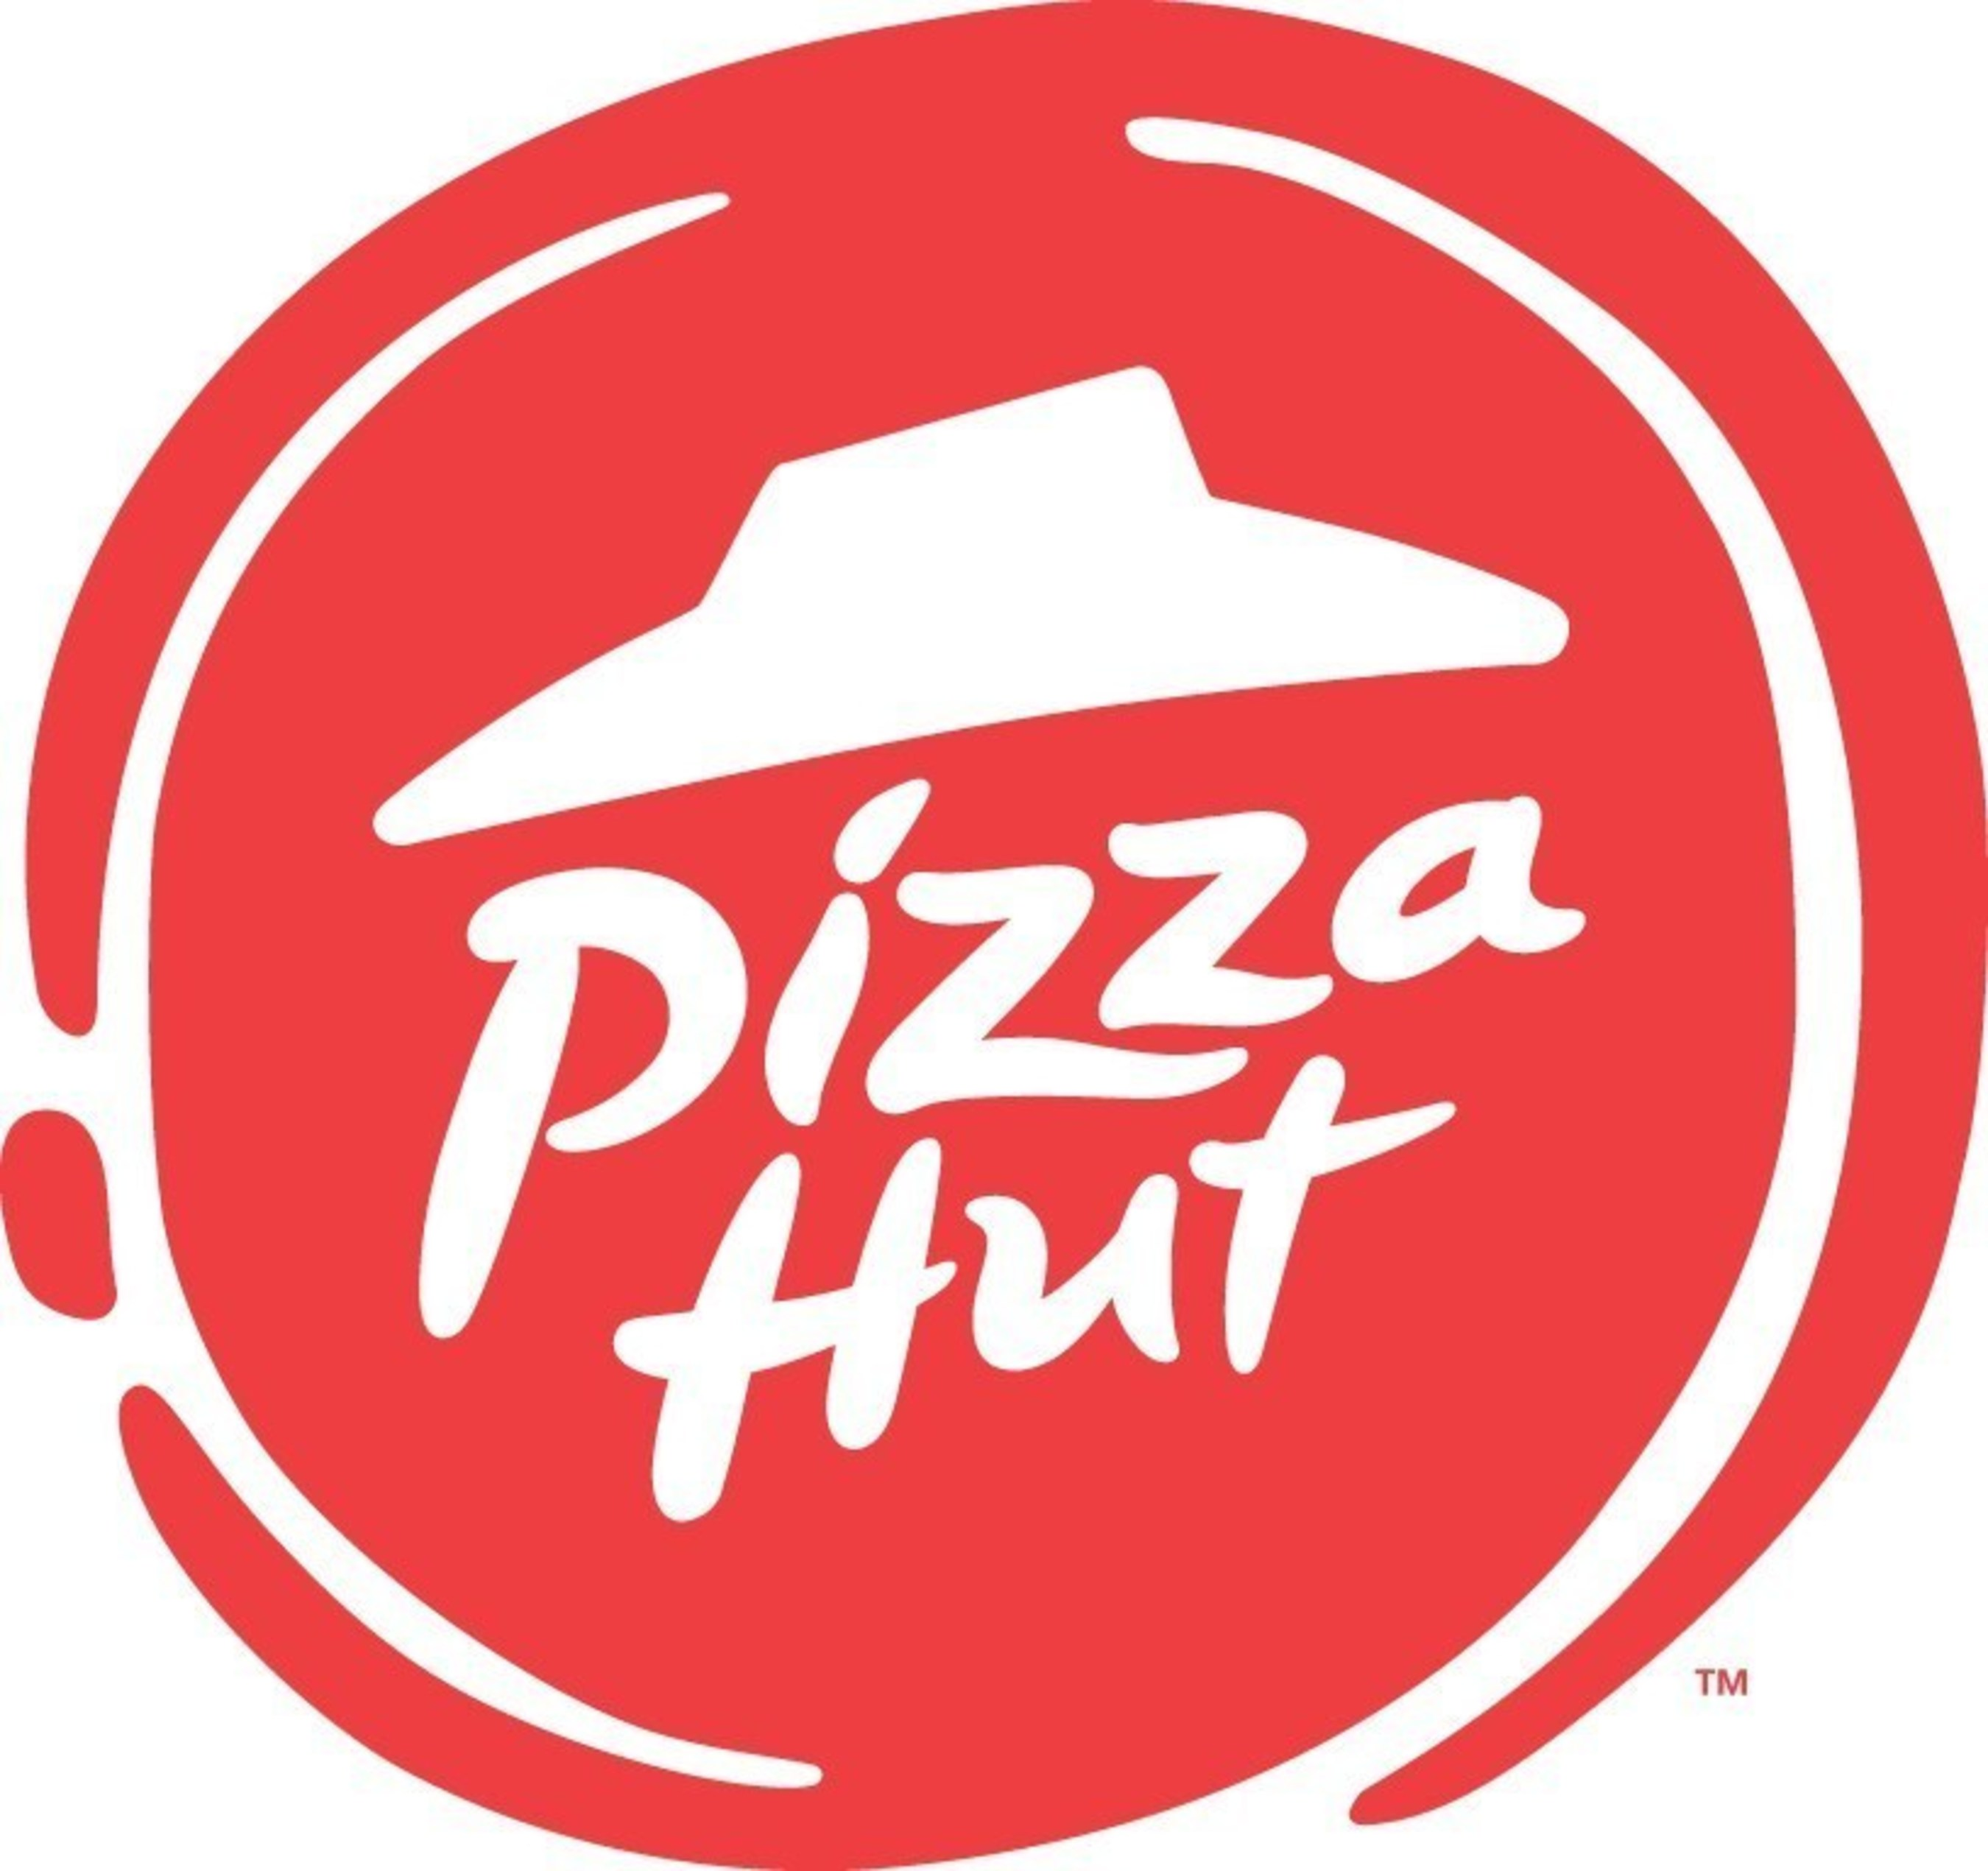 The day before Thanksgiving is one of the busiest pizza days of the year and, as the pizza restaurant which serves and delivers more pizzas than any other pizza restaurant in the world, Pizza Hut is making it easier than ever to get quality pizzas with the $10 Any Deal and the holiday-themed Triple Treat Box.